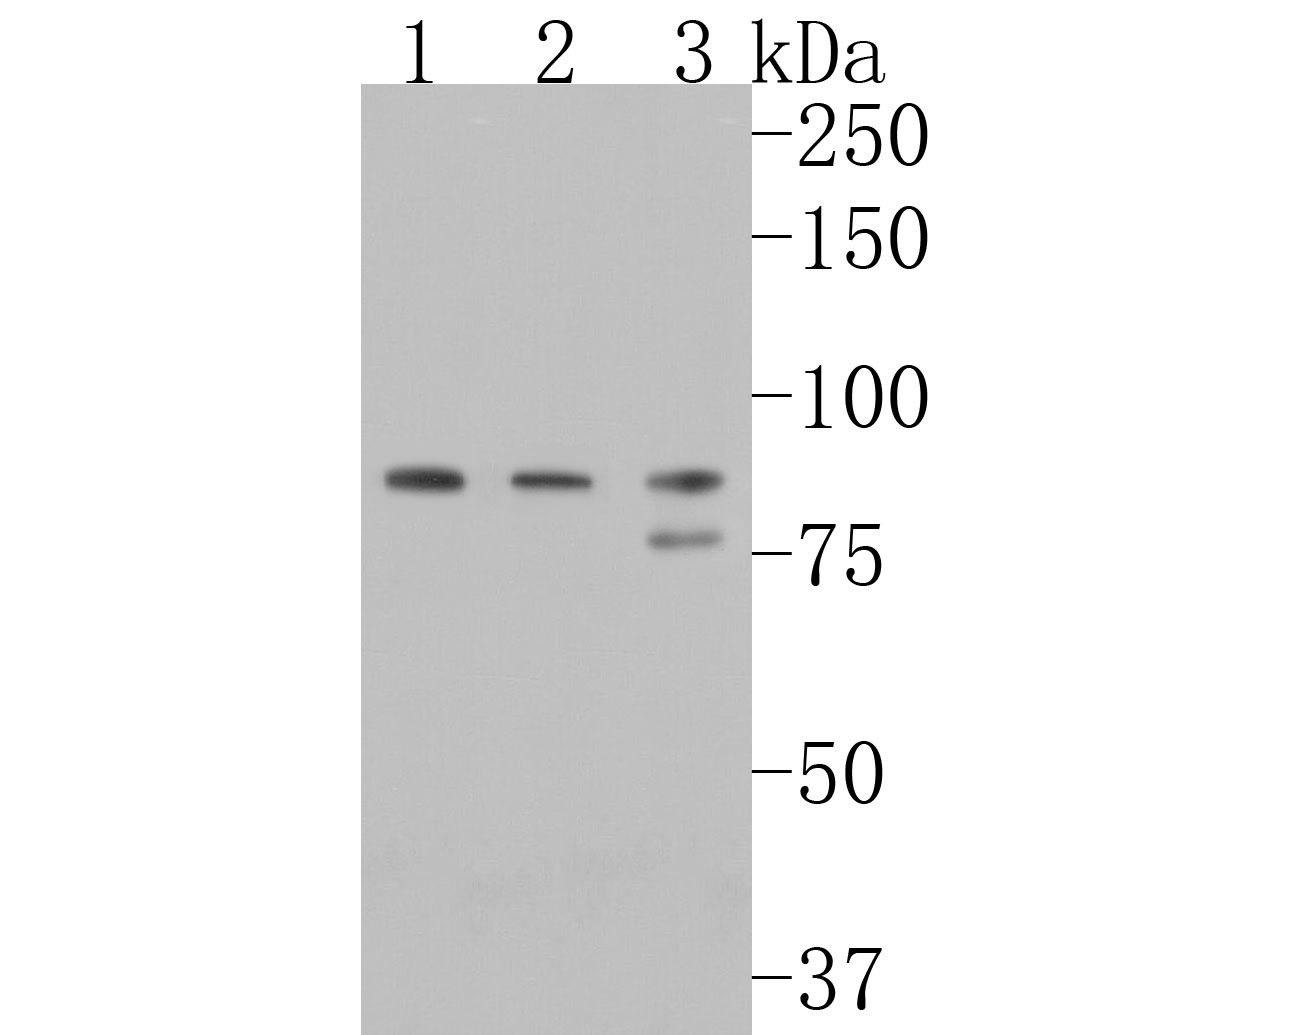 Western blot analysis of OPA1 on different lysates. Proteins were transferred to a PVDF membrane and blocked with 5% BSA in PBS for 1 hour at room temperature. The primary antibody (ET1705-9, 1/500) was used in 5% BSA at room temperature for 2 hours. Goat Anti-Rabbit IgG - HRP Secondary Antibody (HA1001) at 1:5,000 dilution was used for 1 hour at room temperature.<br /> Positive control: <br /> Lane 1: mouse testis tissue lysate<br /> Lane 2: PC-12 cell lysate<br /> Lane 3: mouse brain tissue lysate